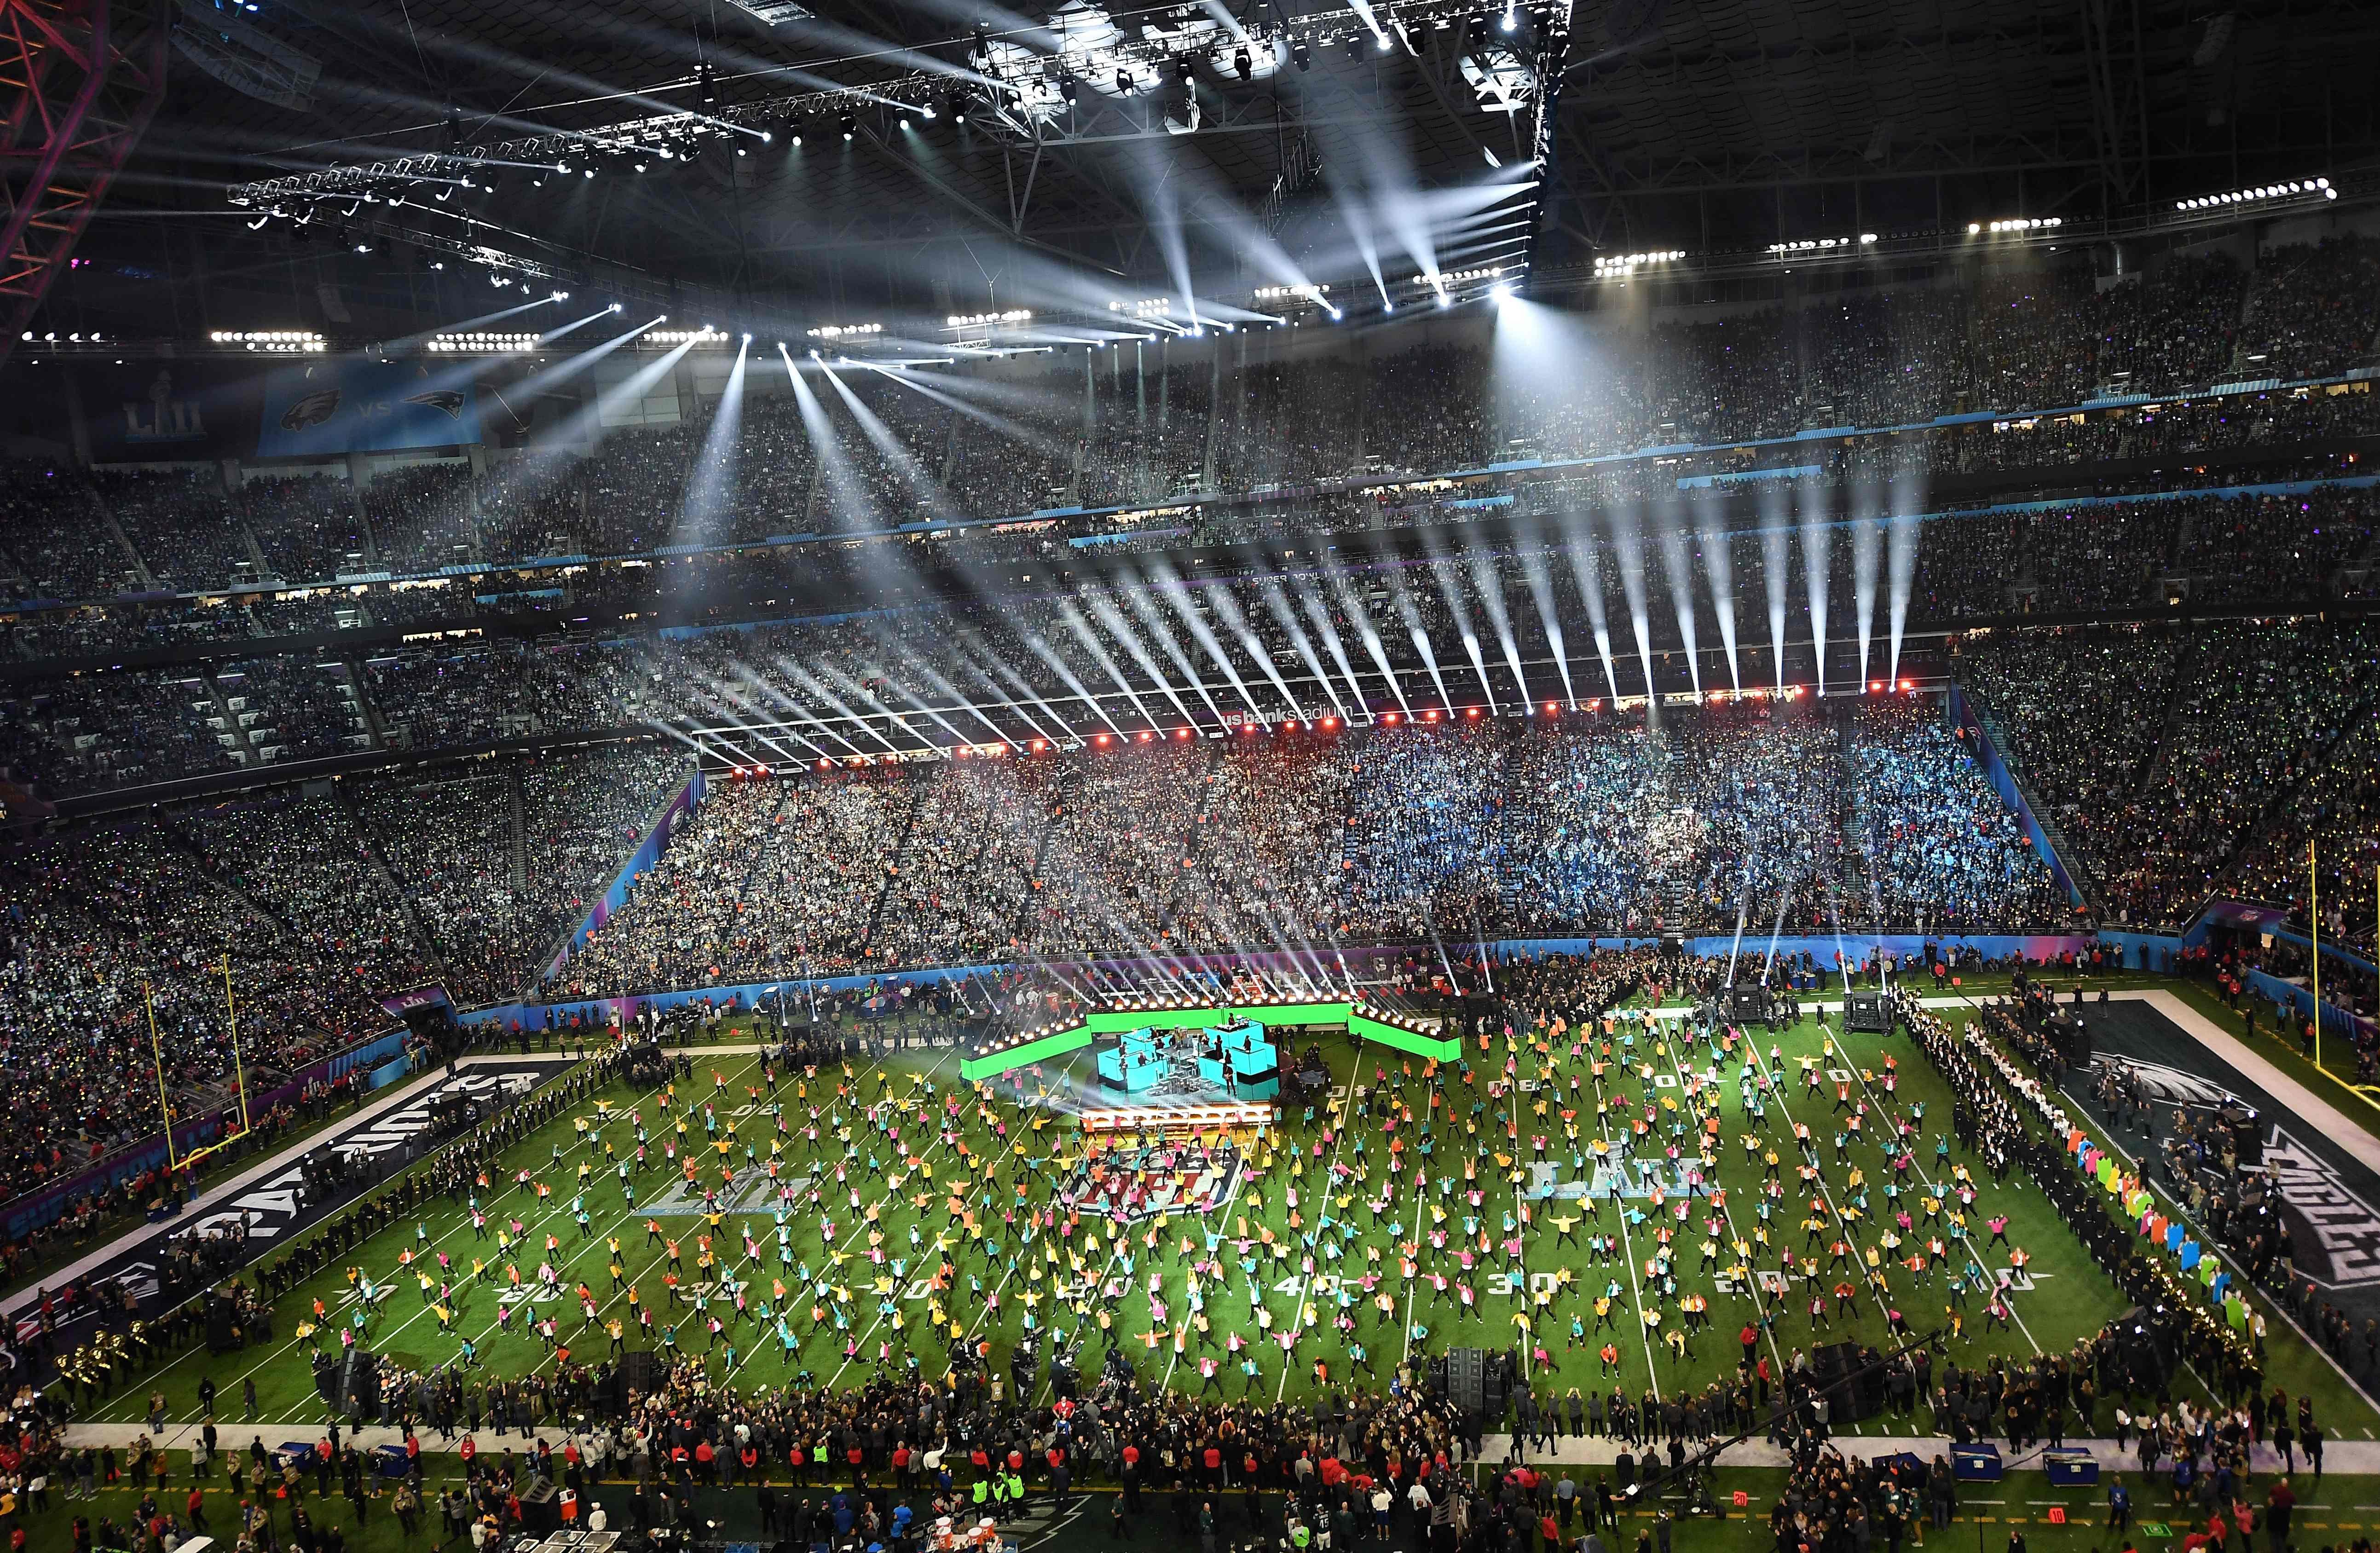 The Super Bowl half-time is one of the biggest gigs for performers